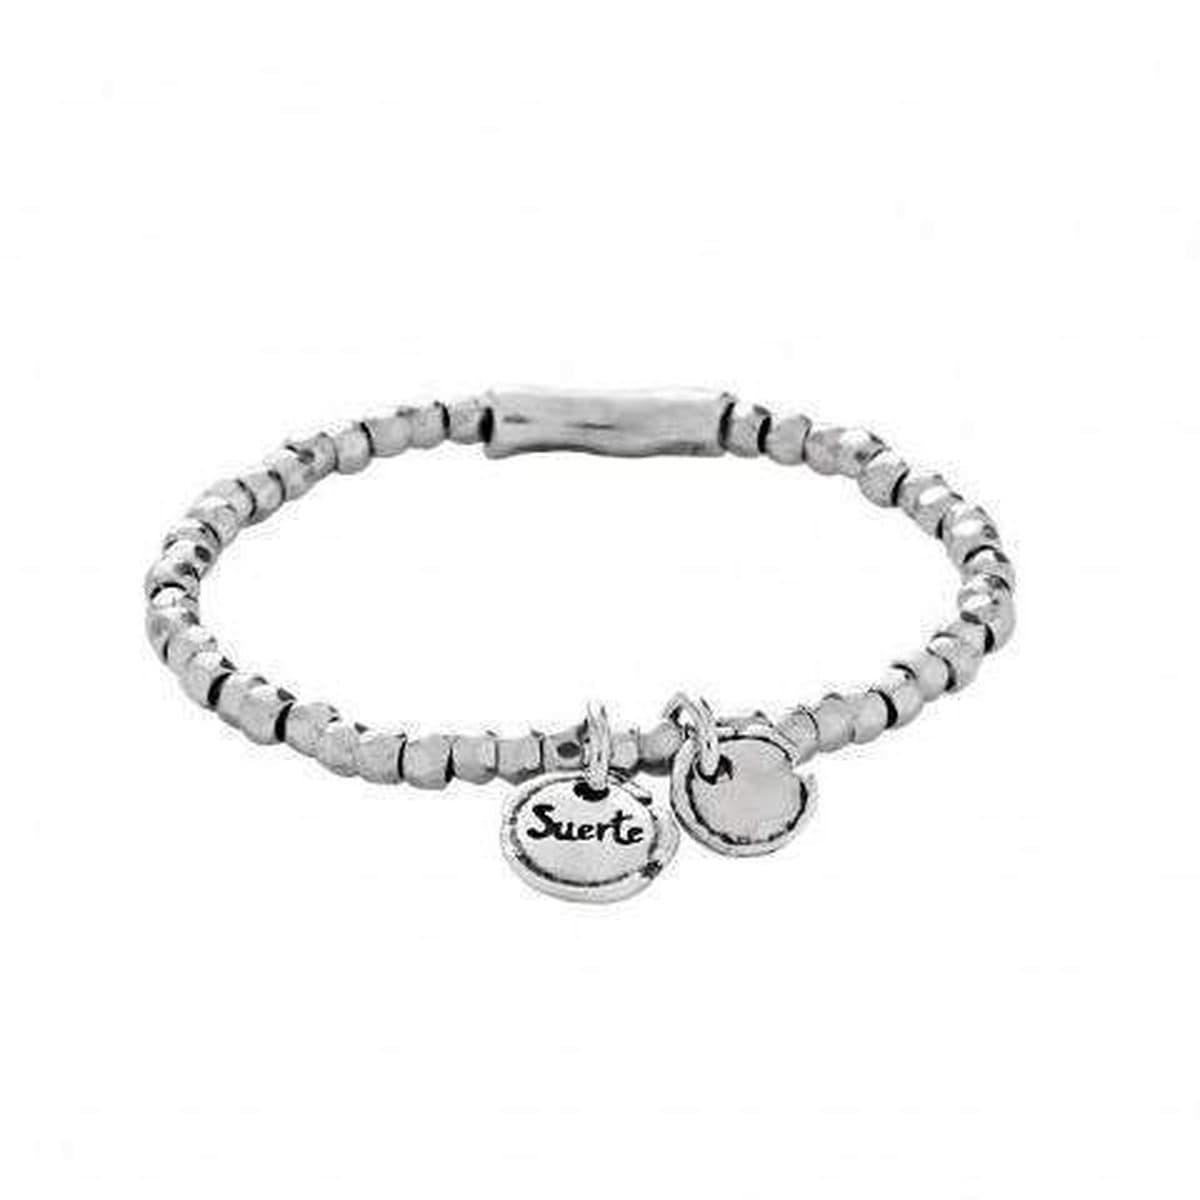 Certificated Luck Bracelet - PUL1597MTL000